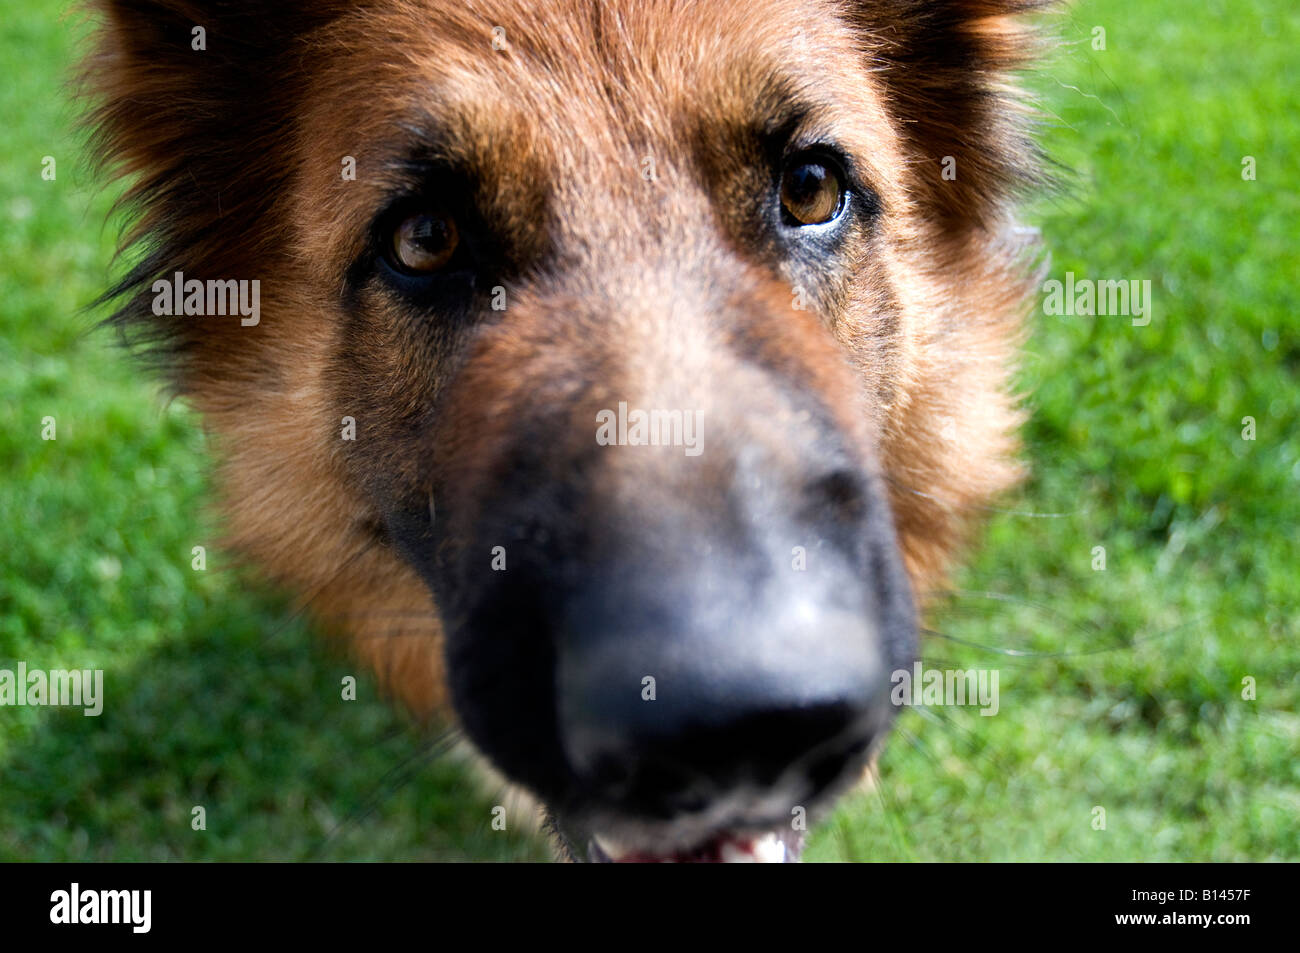 Close up portrait of a German Shepherd dog Stock Photo